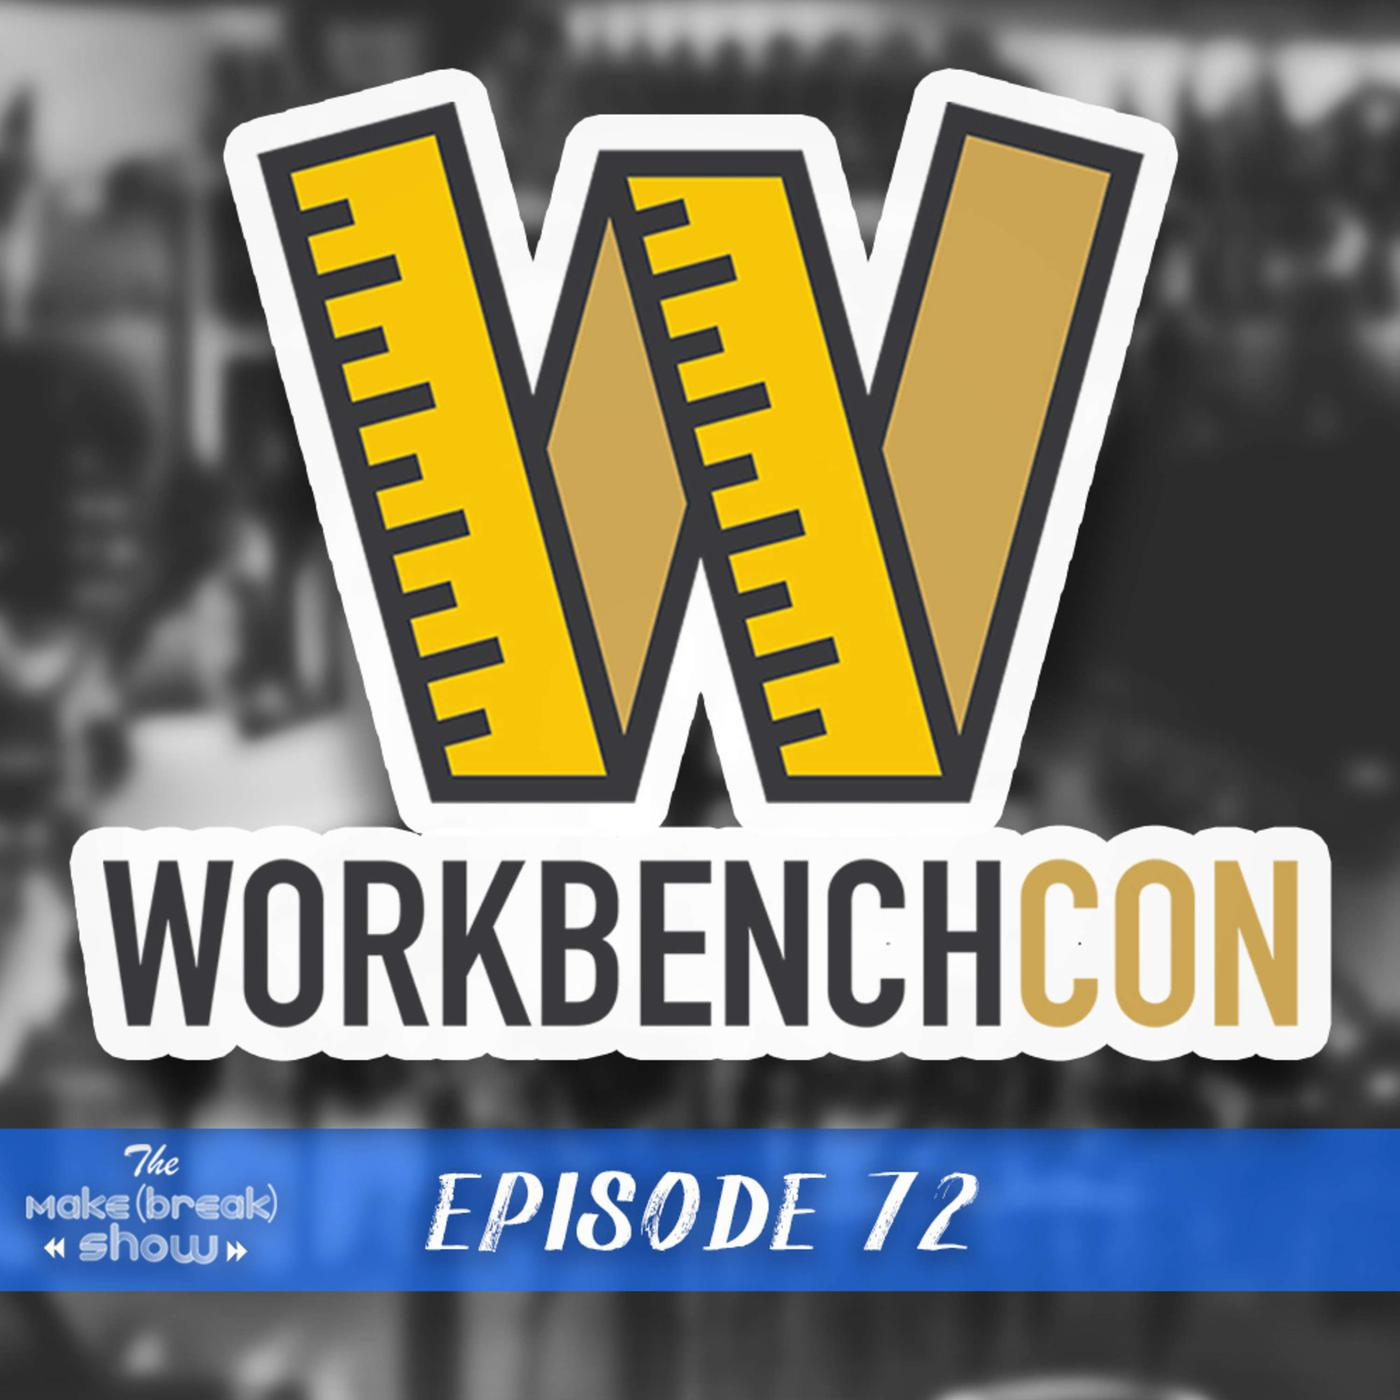 I'm your host Brandon Cullum and this week we chat with Kristin Stockdale one of the creators and organizers of Workbench Con. Find out what it takes to make a conference for makers, especially when it's brand new!